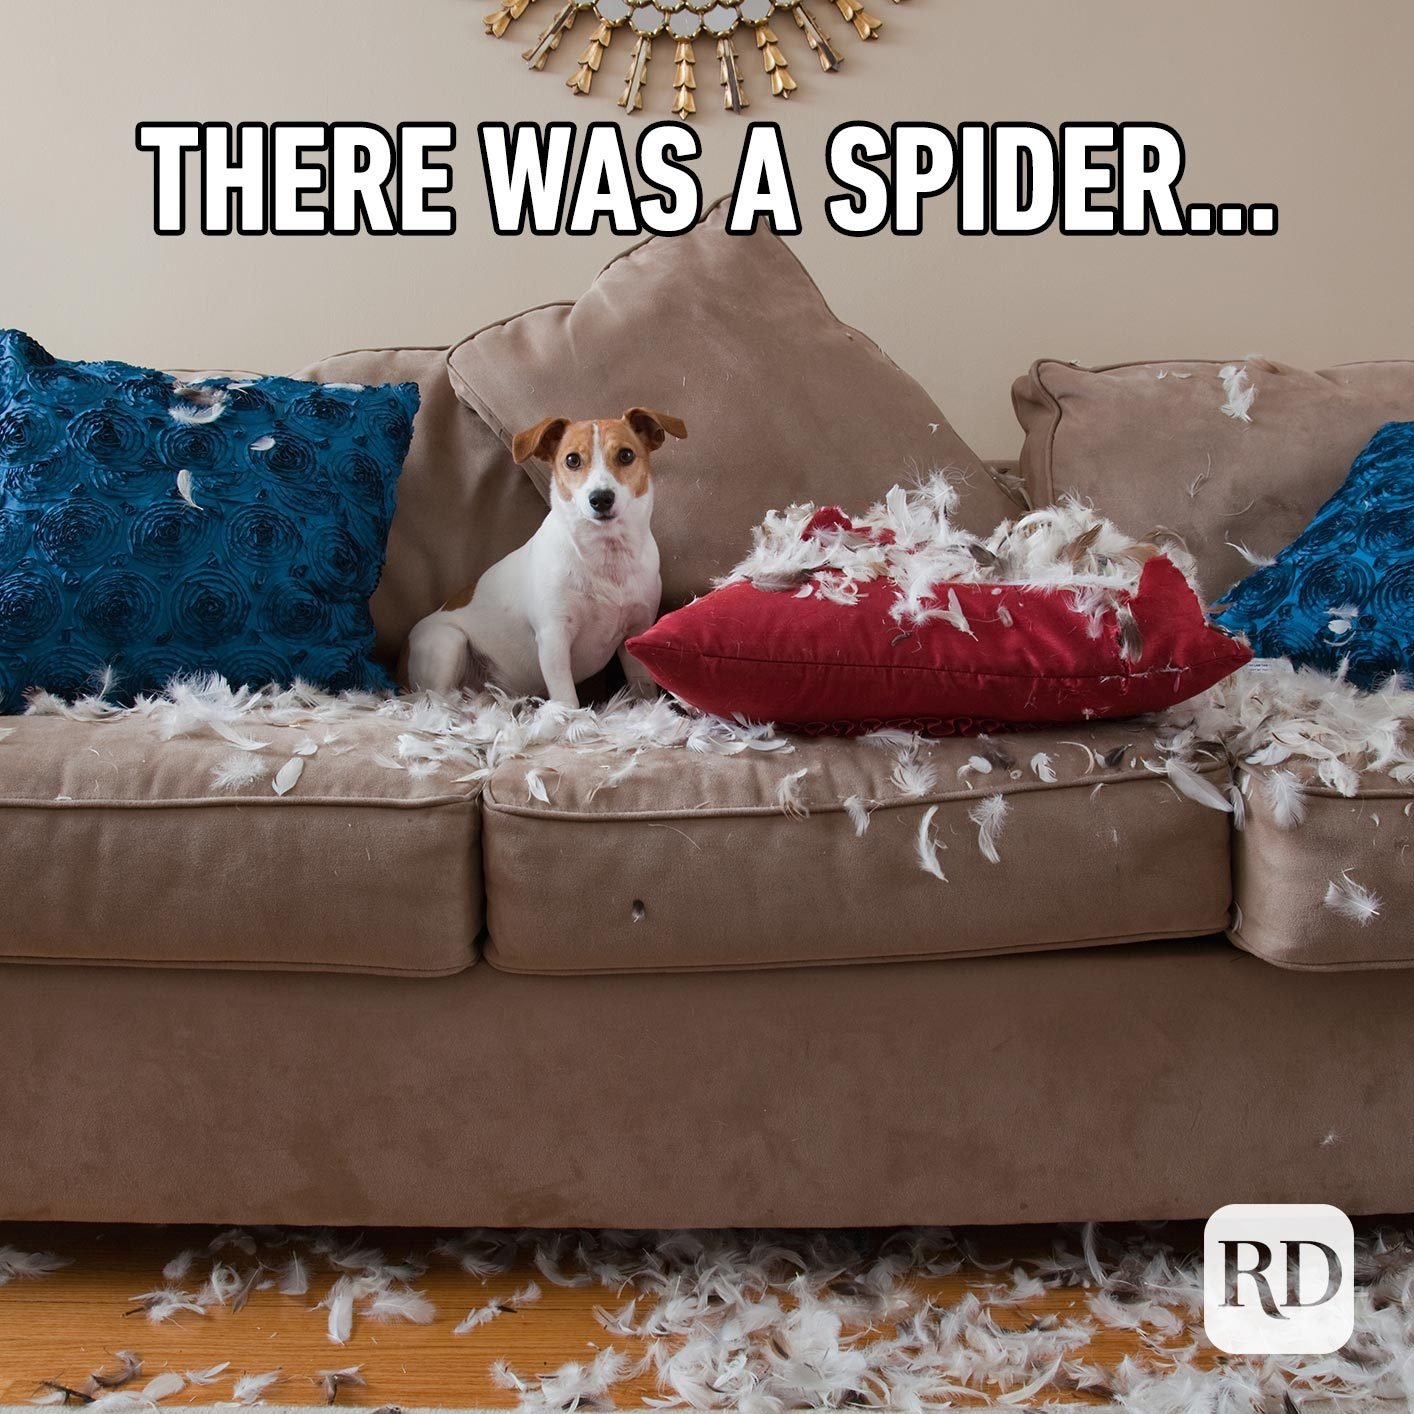 Dog tearing up pillows. Meme text: There was a spider…